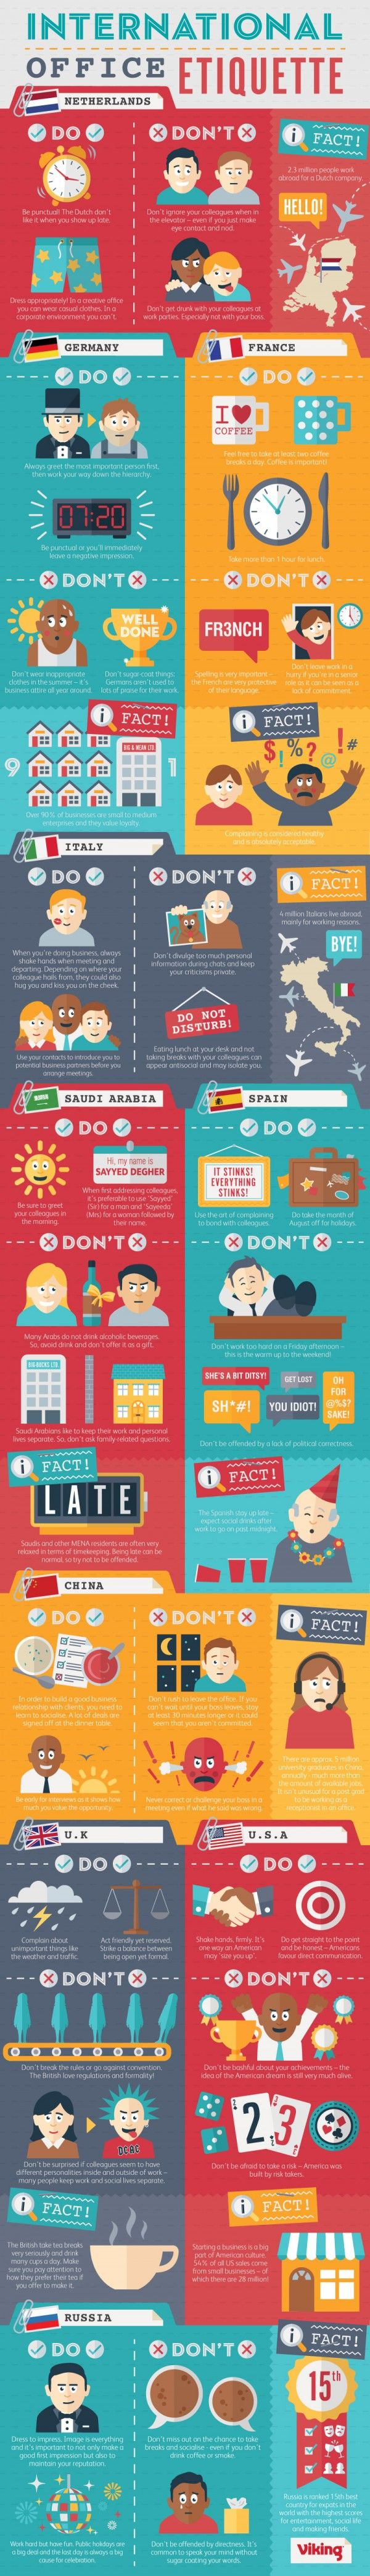 The Guide To International Office Etiquette. Re-pinned by #Europass